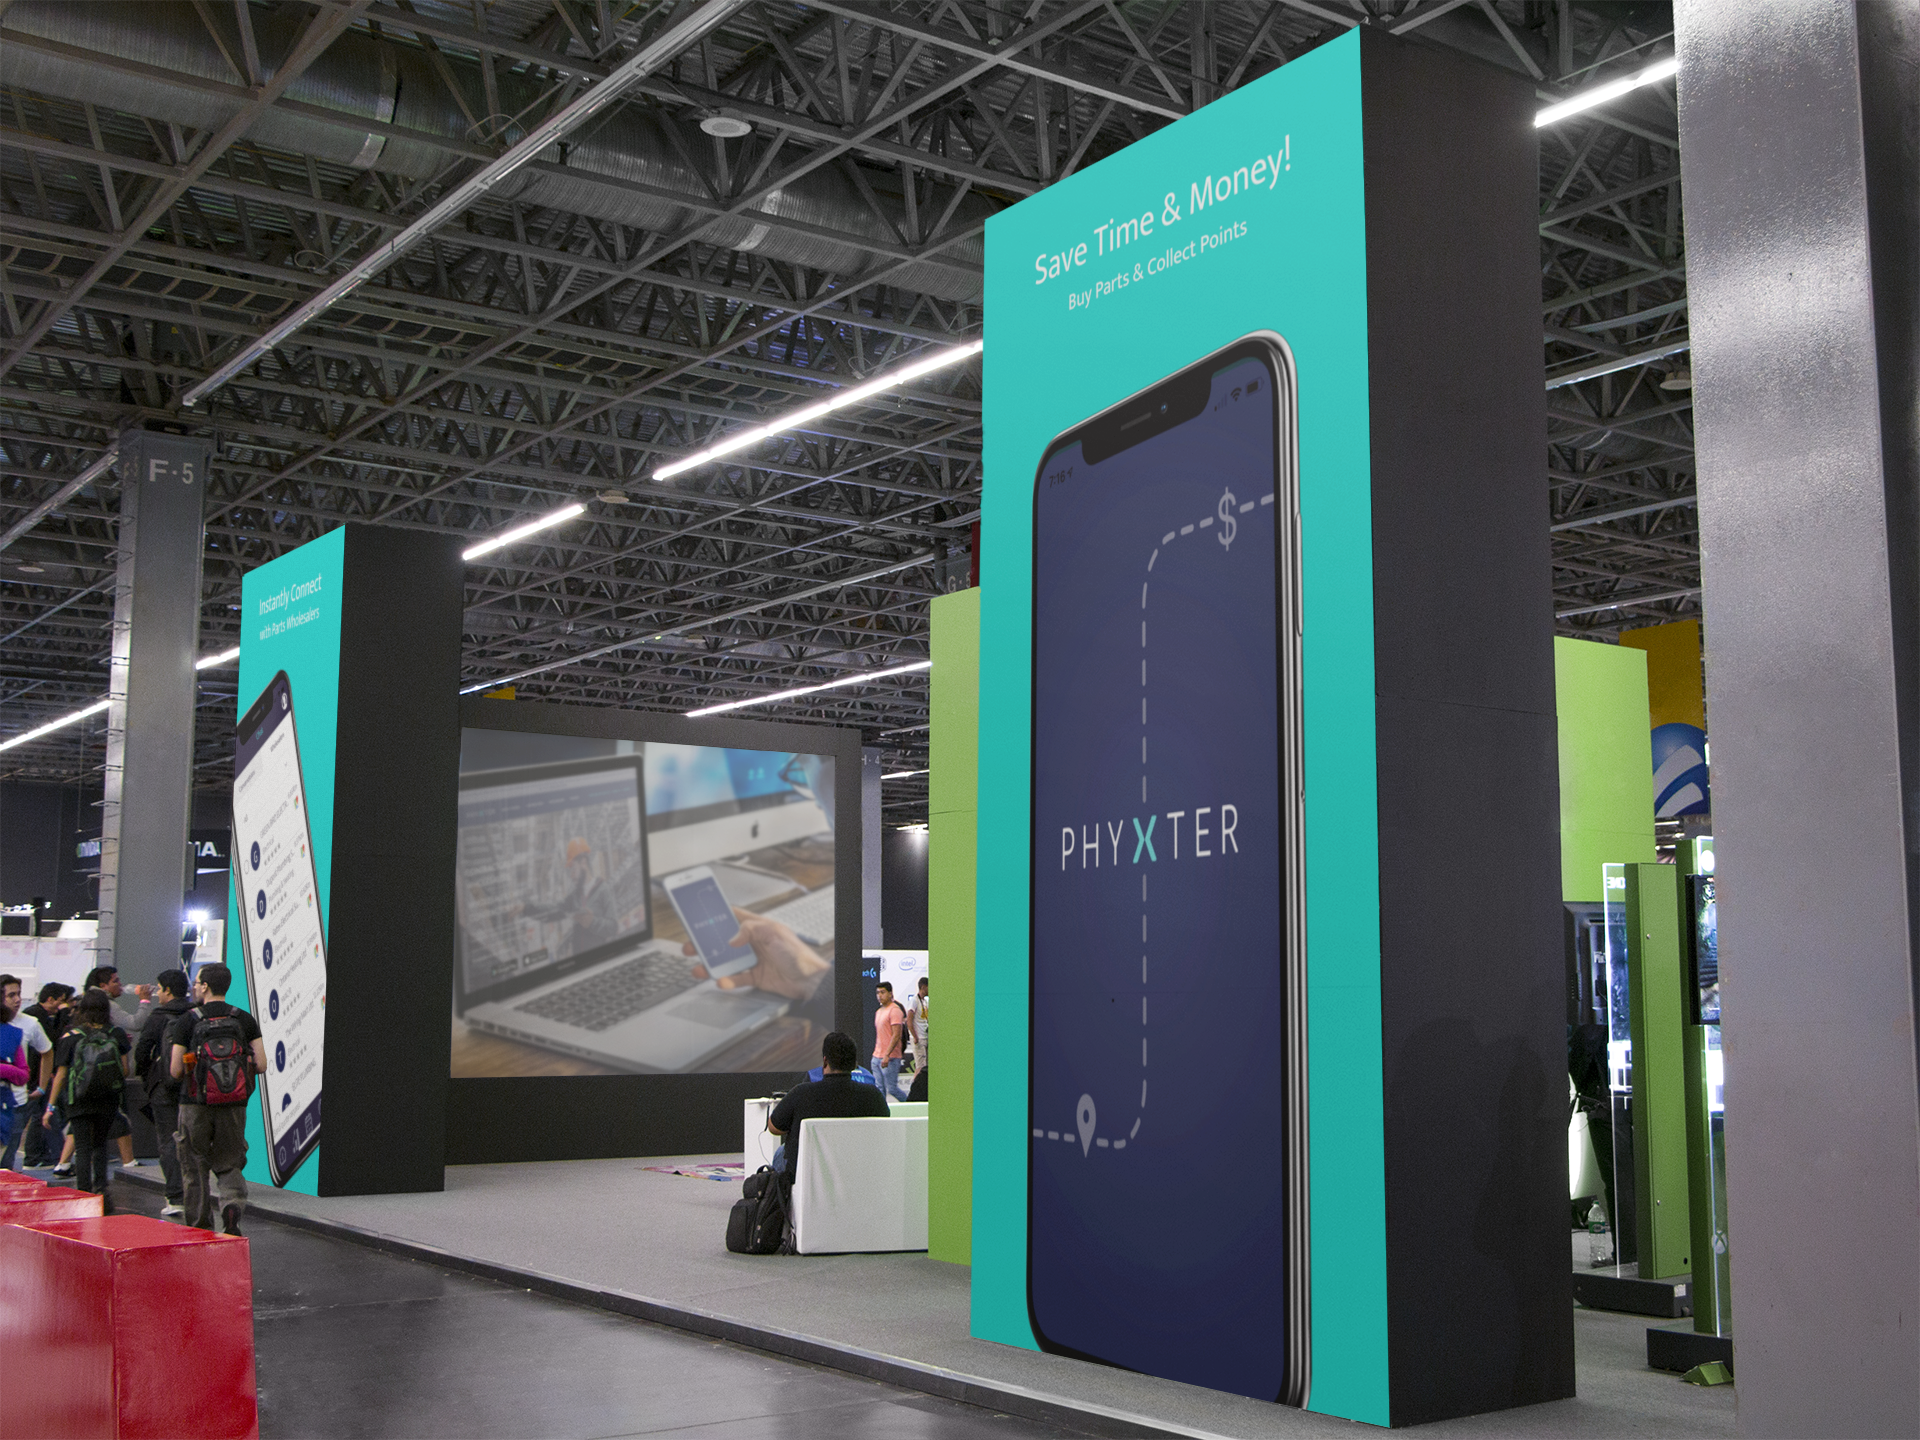 trade-show-stand-mockup-featuring-vertical-banners-and-screen-nnnnnn.png